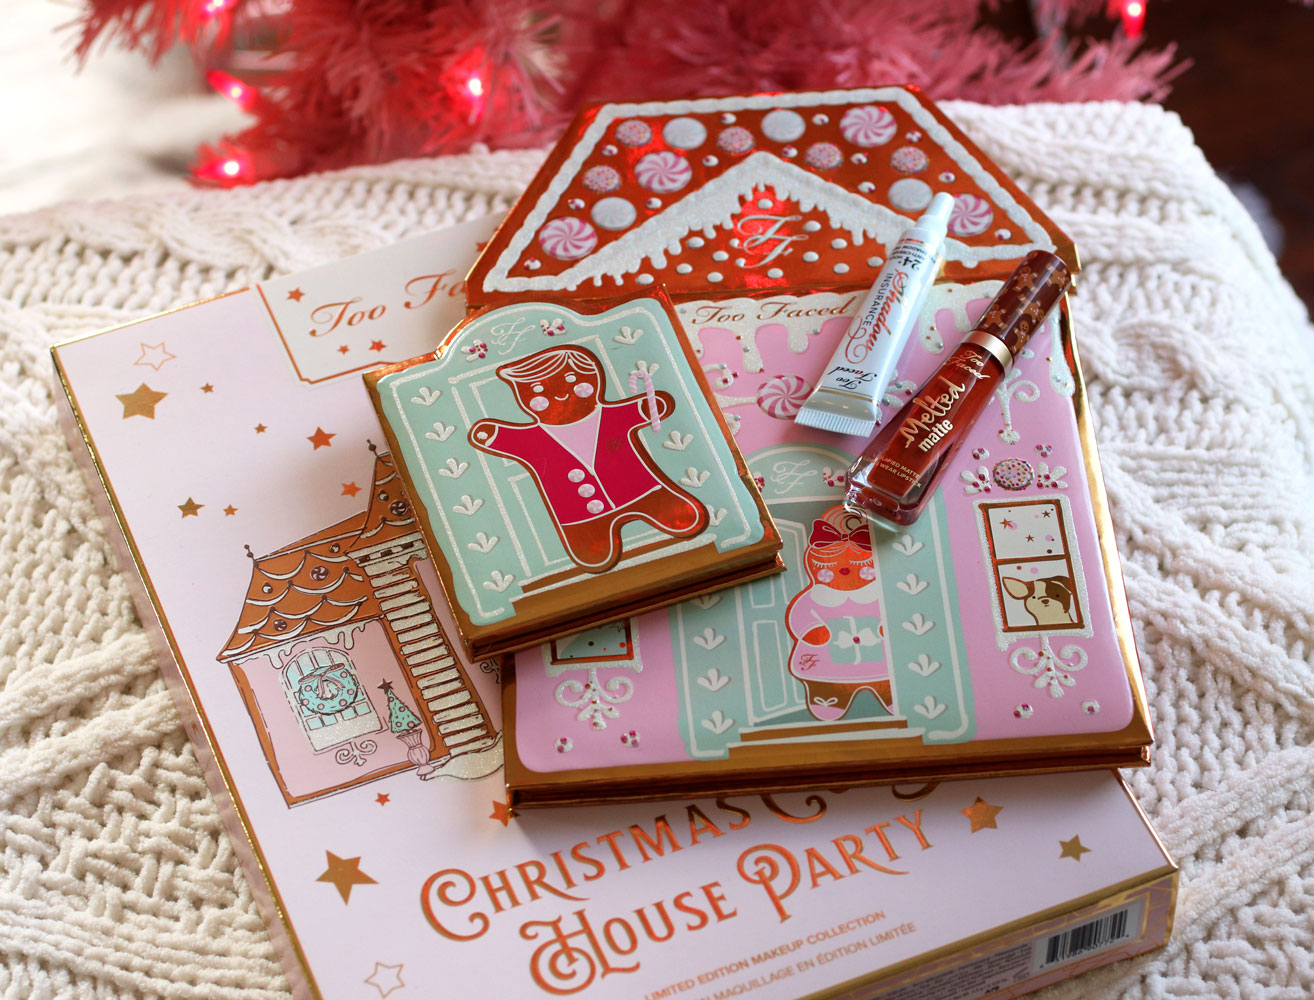 Too Faced Christmas Cookie House Party holiday gift set 2019